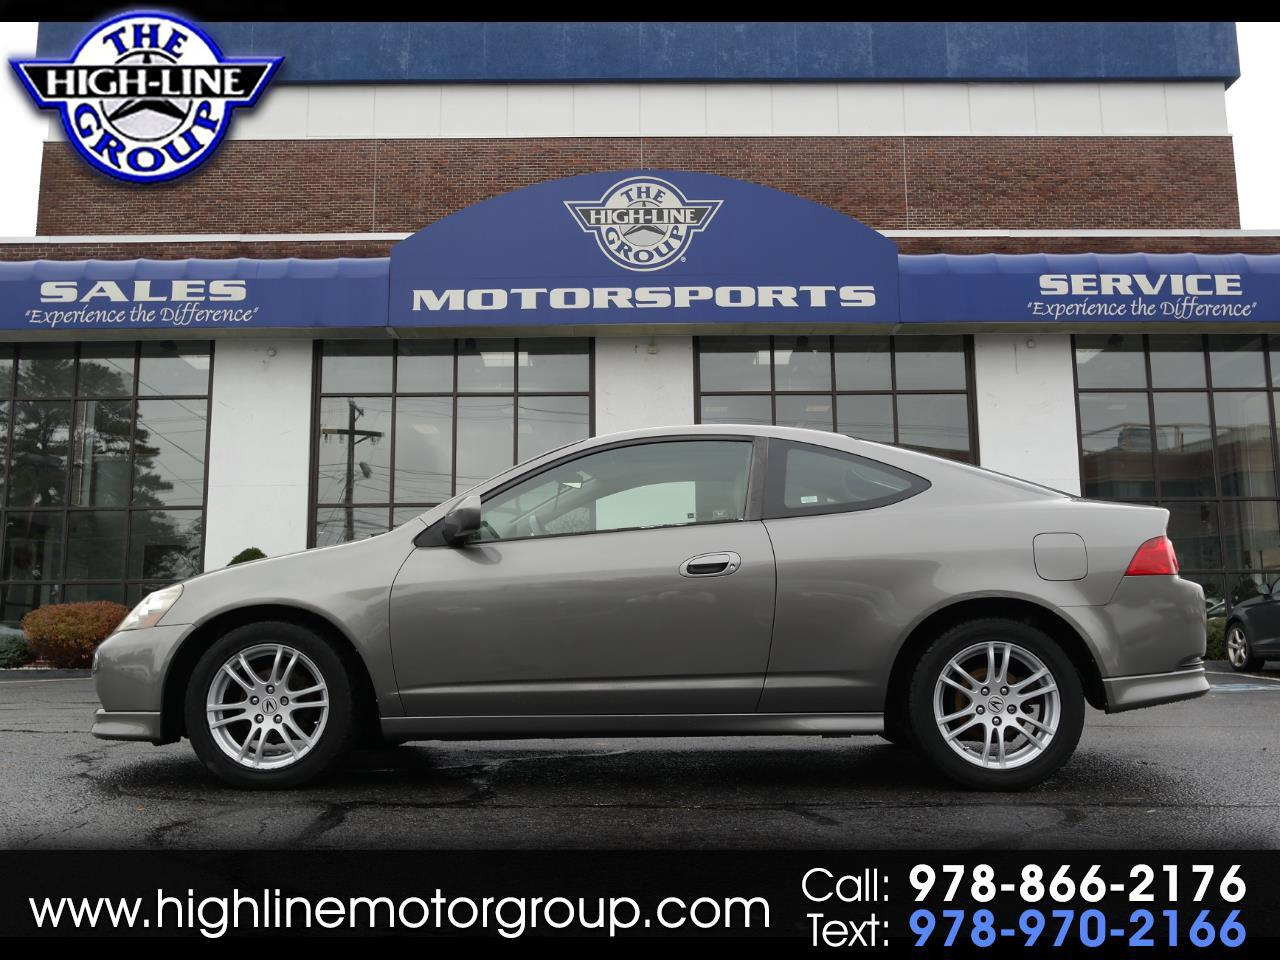 2005 Acura RSX 2dr Cpe AT